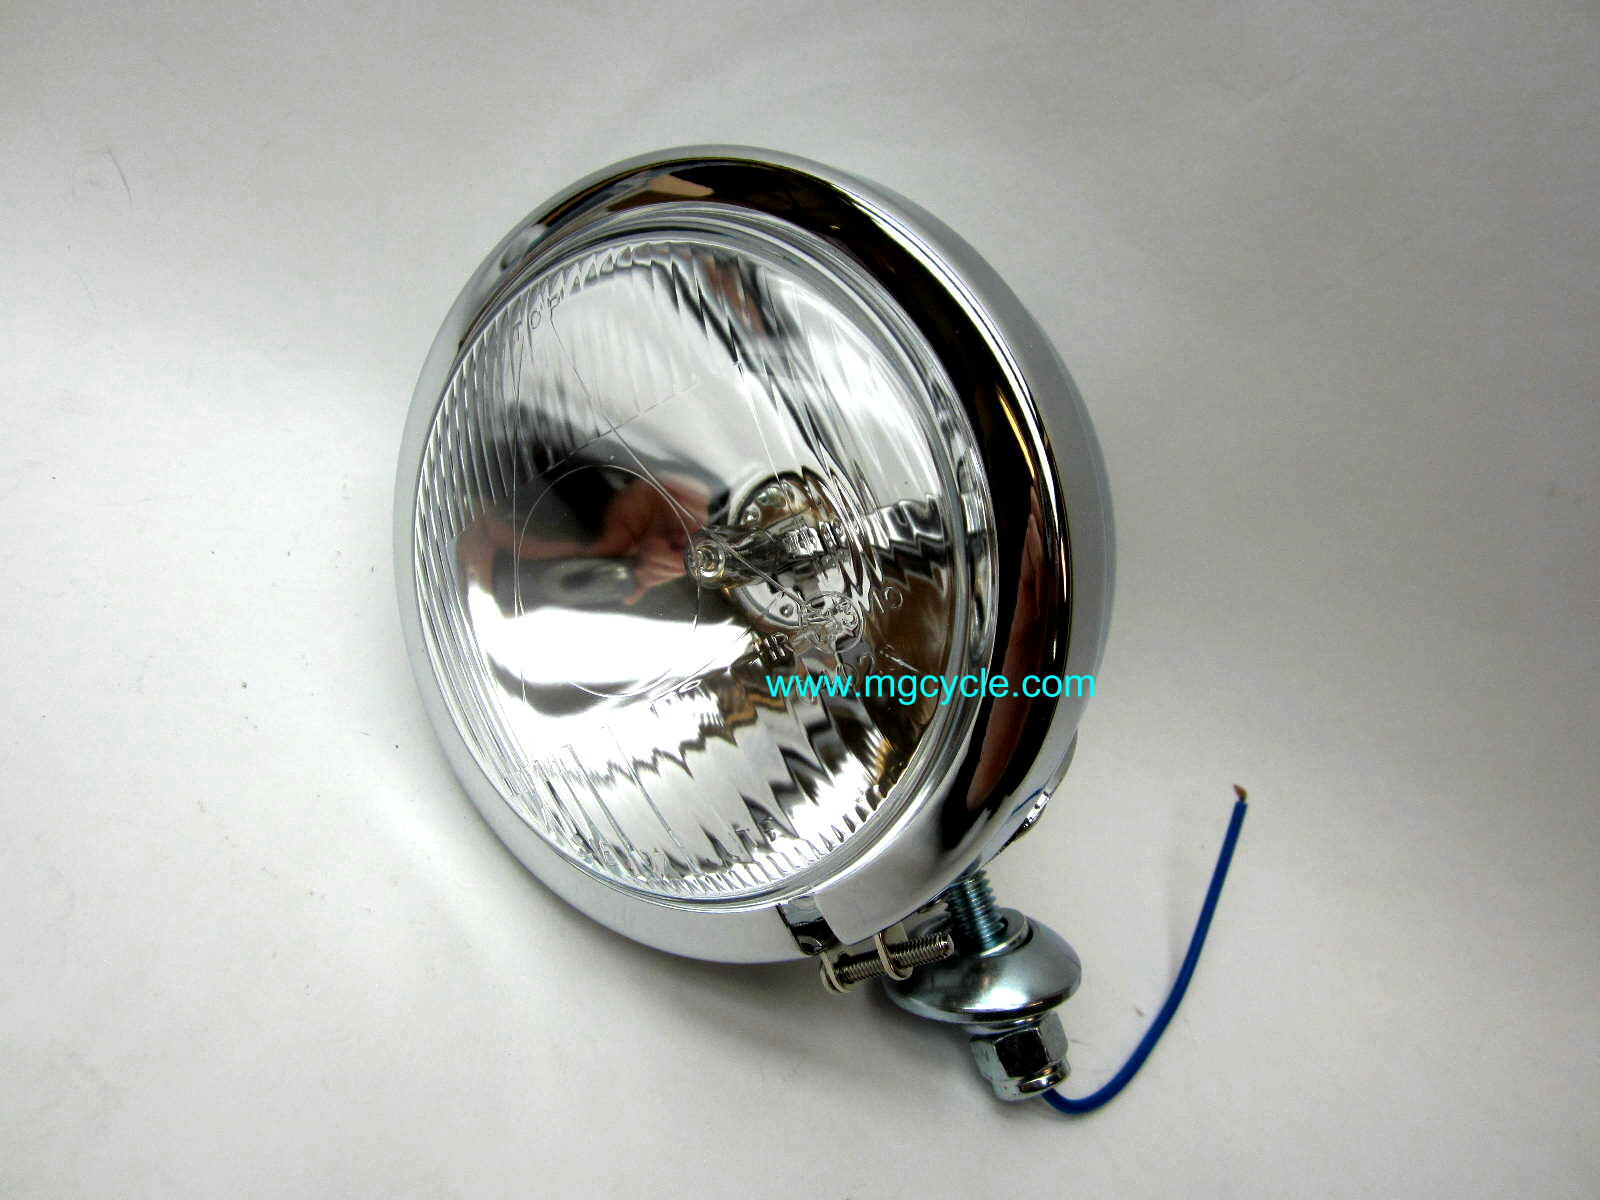 Spot light, 55W H3, chrome stud mount